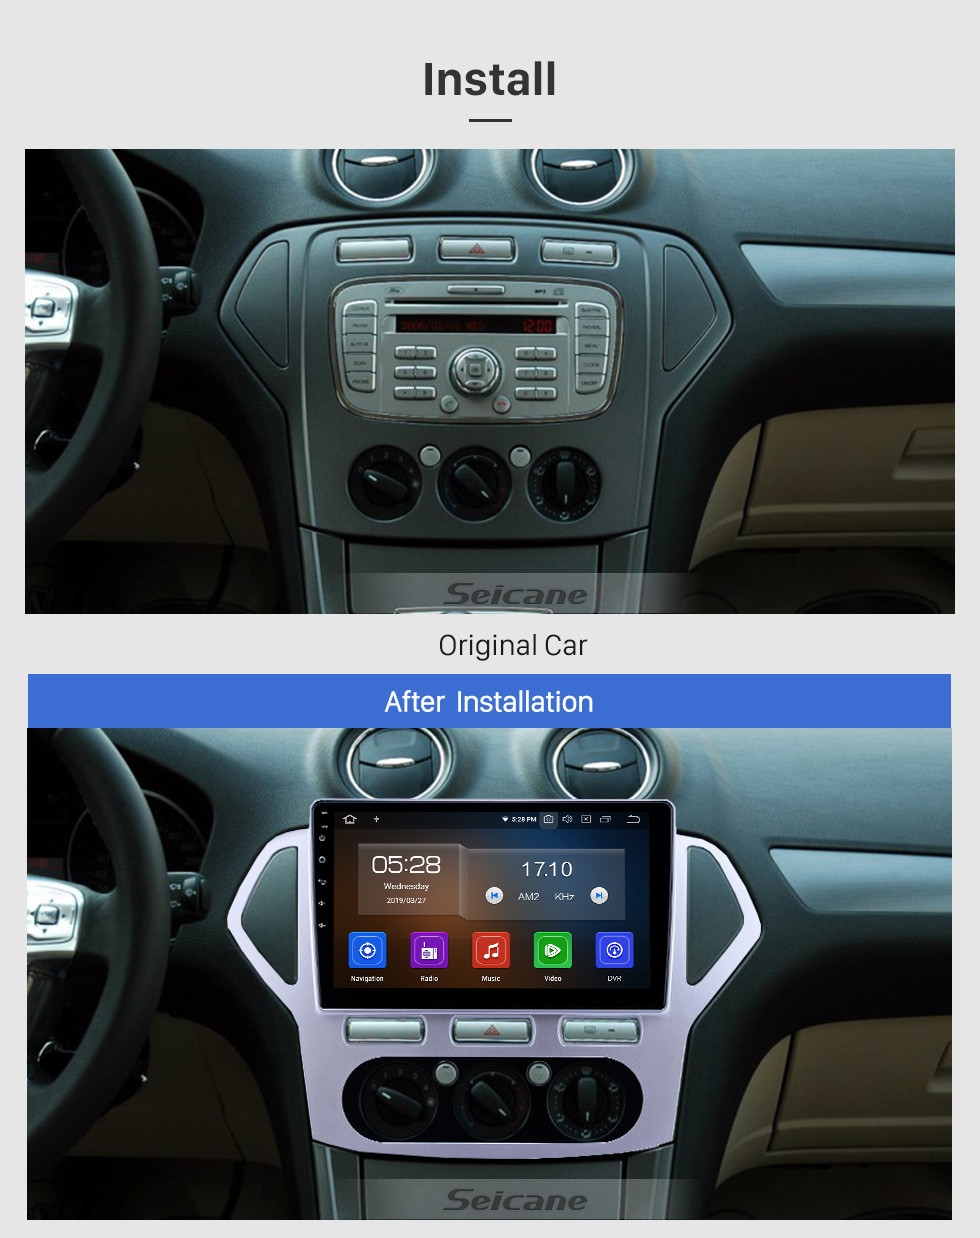 Seicane 10.1 inch Android 10.0 Radio for 2007-2010 Ford Mondeo-Zhisheng Manual A/C Bluetooth Wifi Touchscreen GPS Navigation Carplay support Digital TV